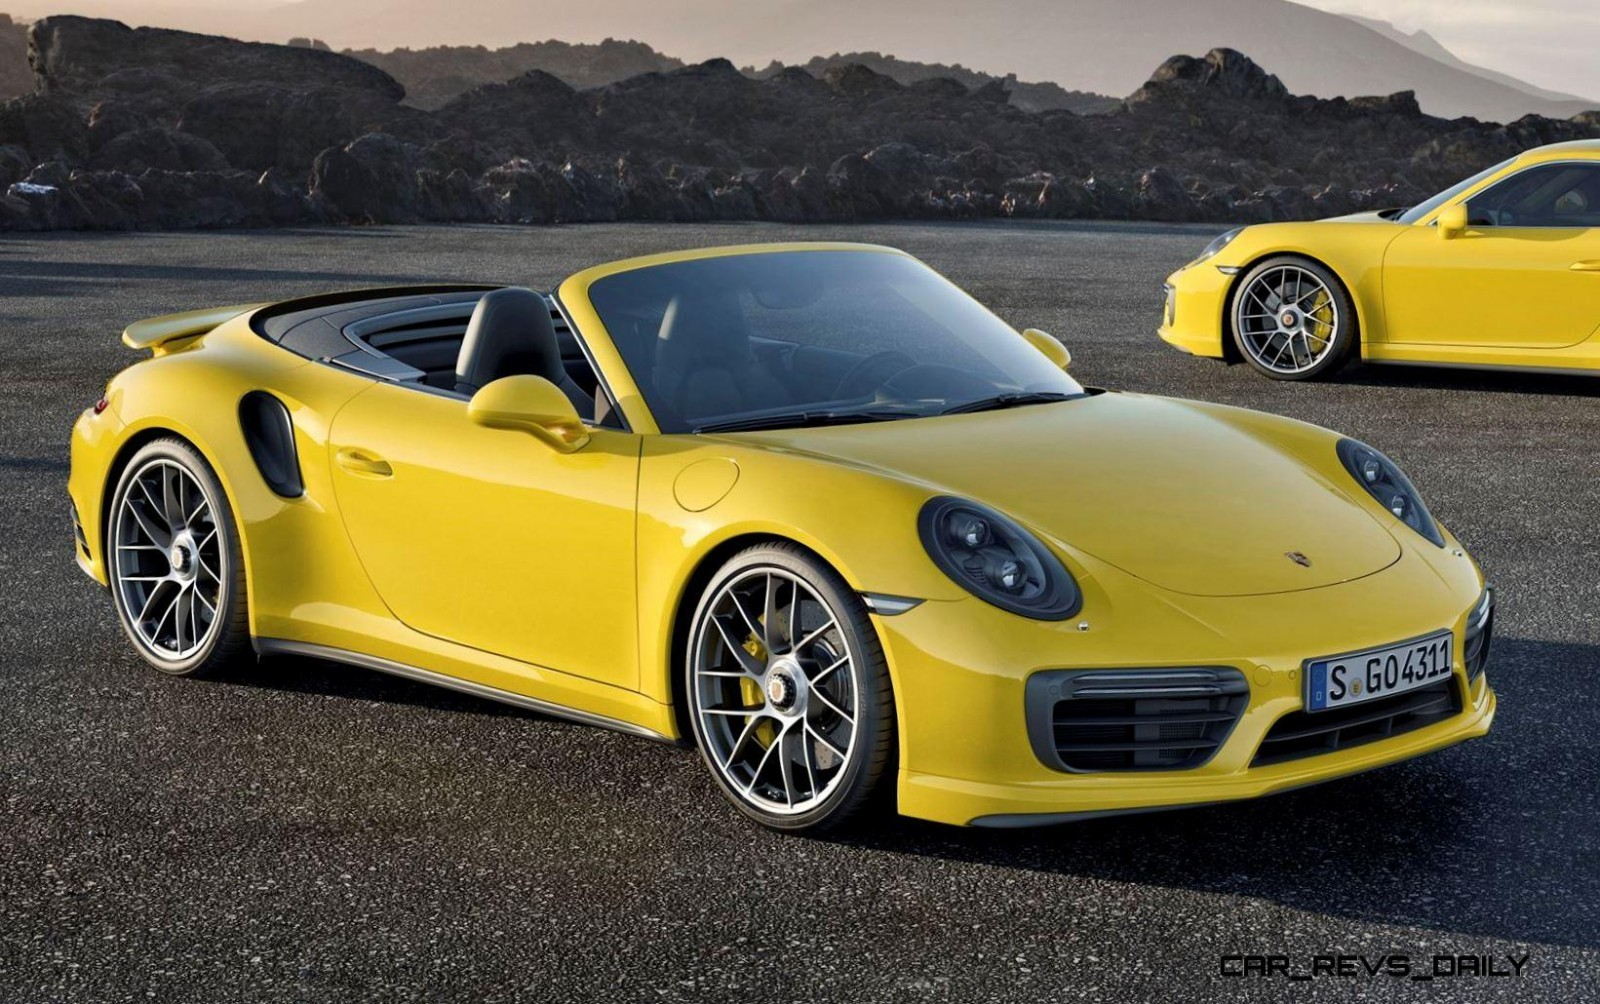 215mph 2017 porsche 911 turbo s revealed new anti lag h6tt on sale in january. Black Bedroom Furniture Sets. Home Design Ideas